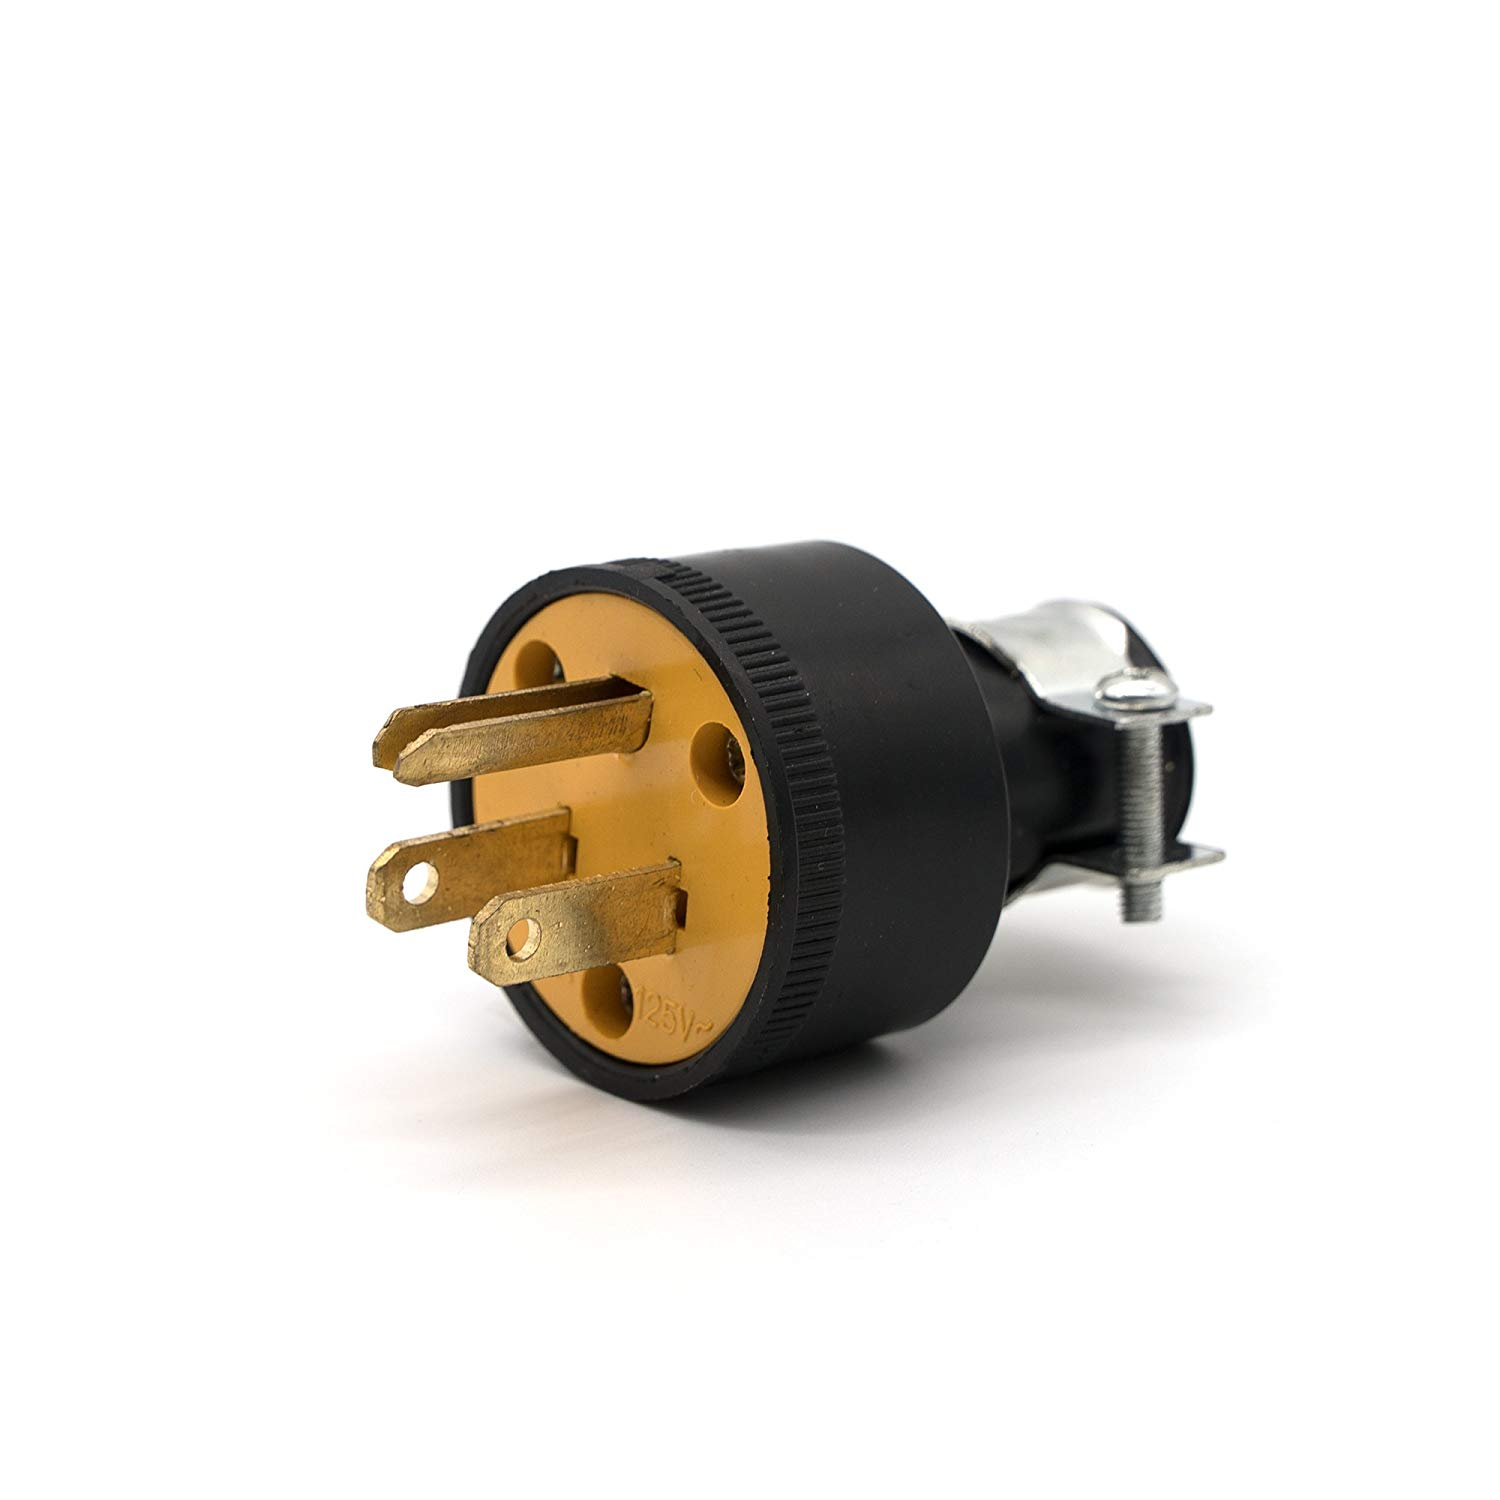 hight resolution of get quotations ram pro 3 wire replacement male electrical plug house extension cord heavy duty replacement